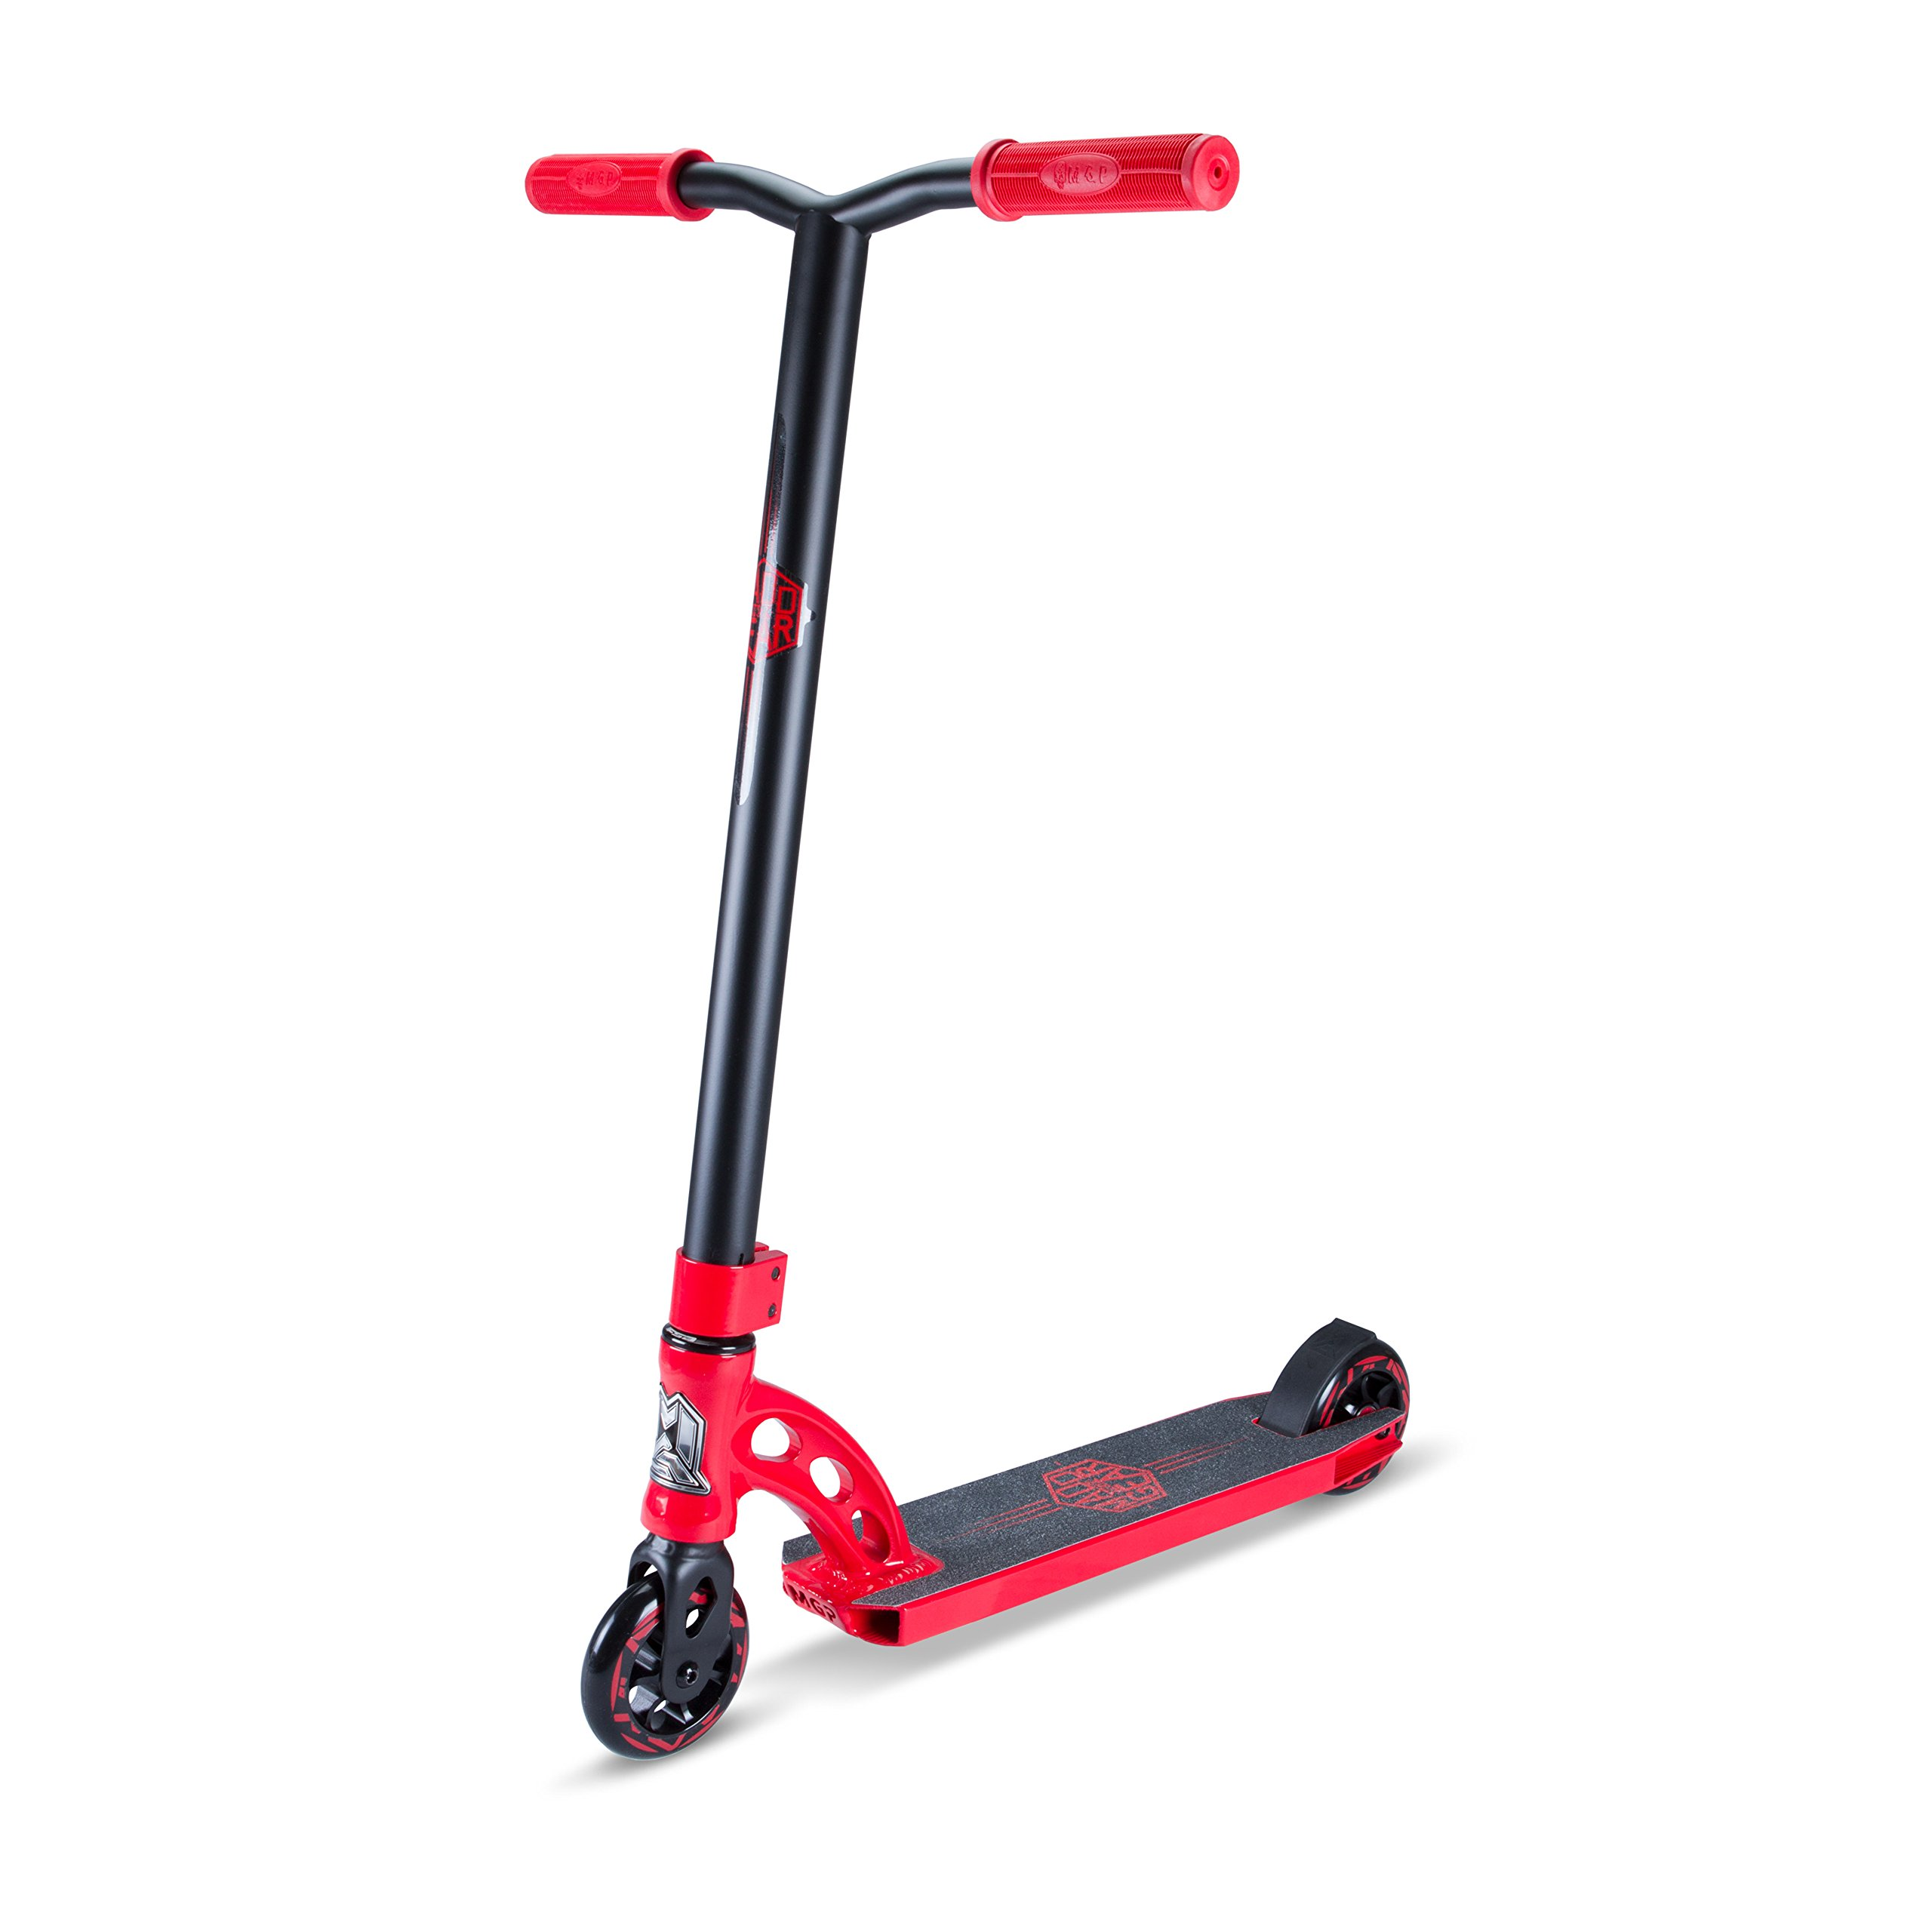 Madd Gear VX7 Mini Pro Scooter, Red by Madd Gear